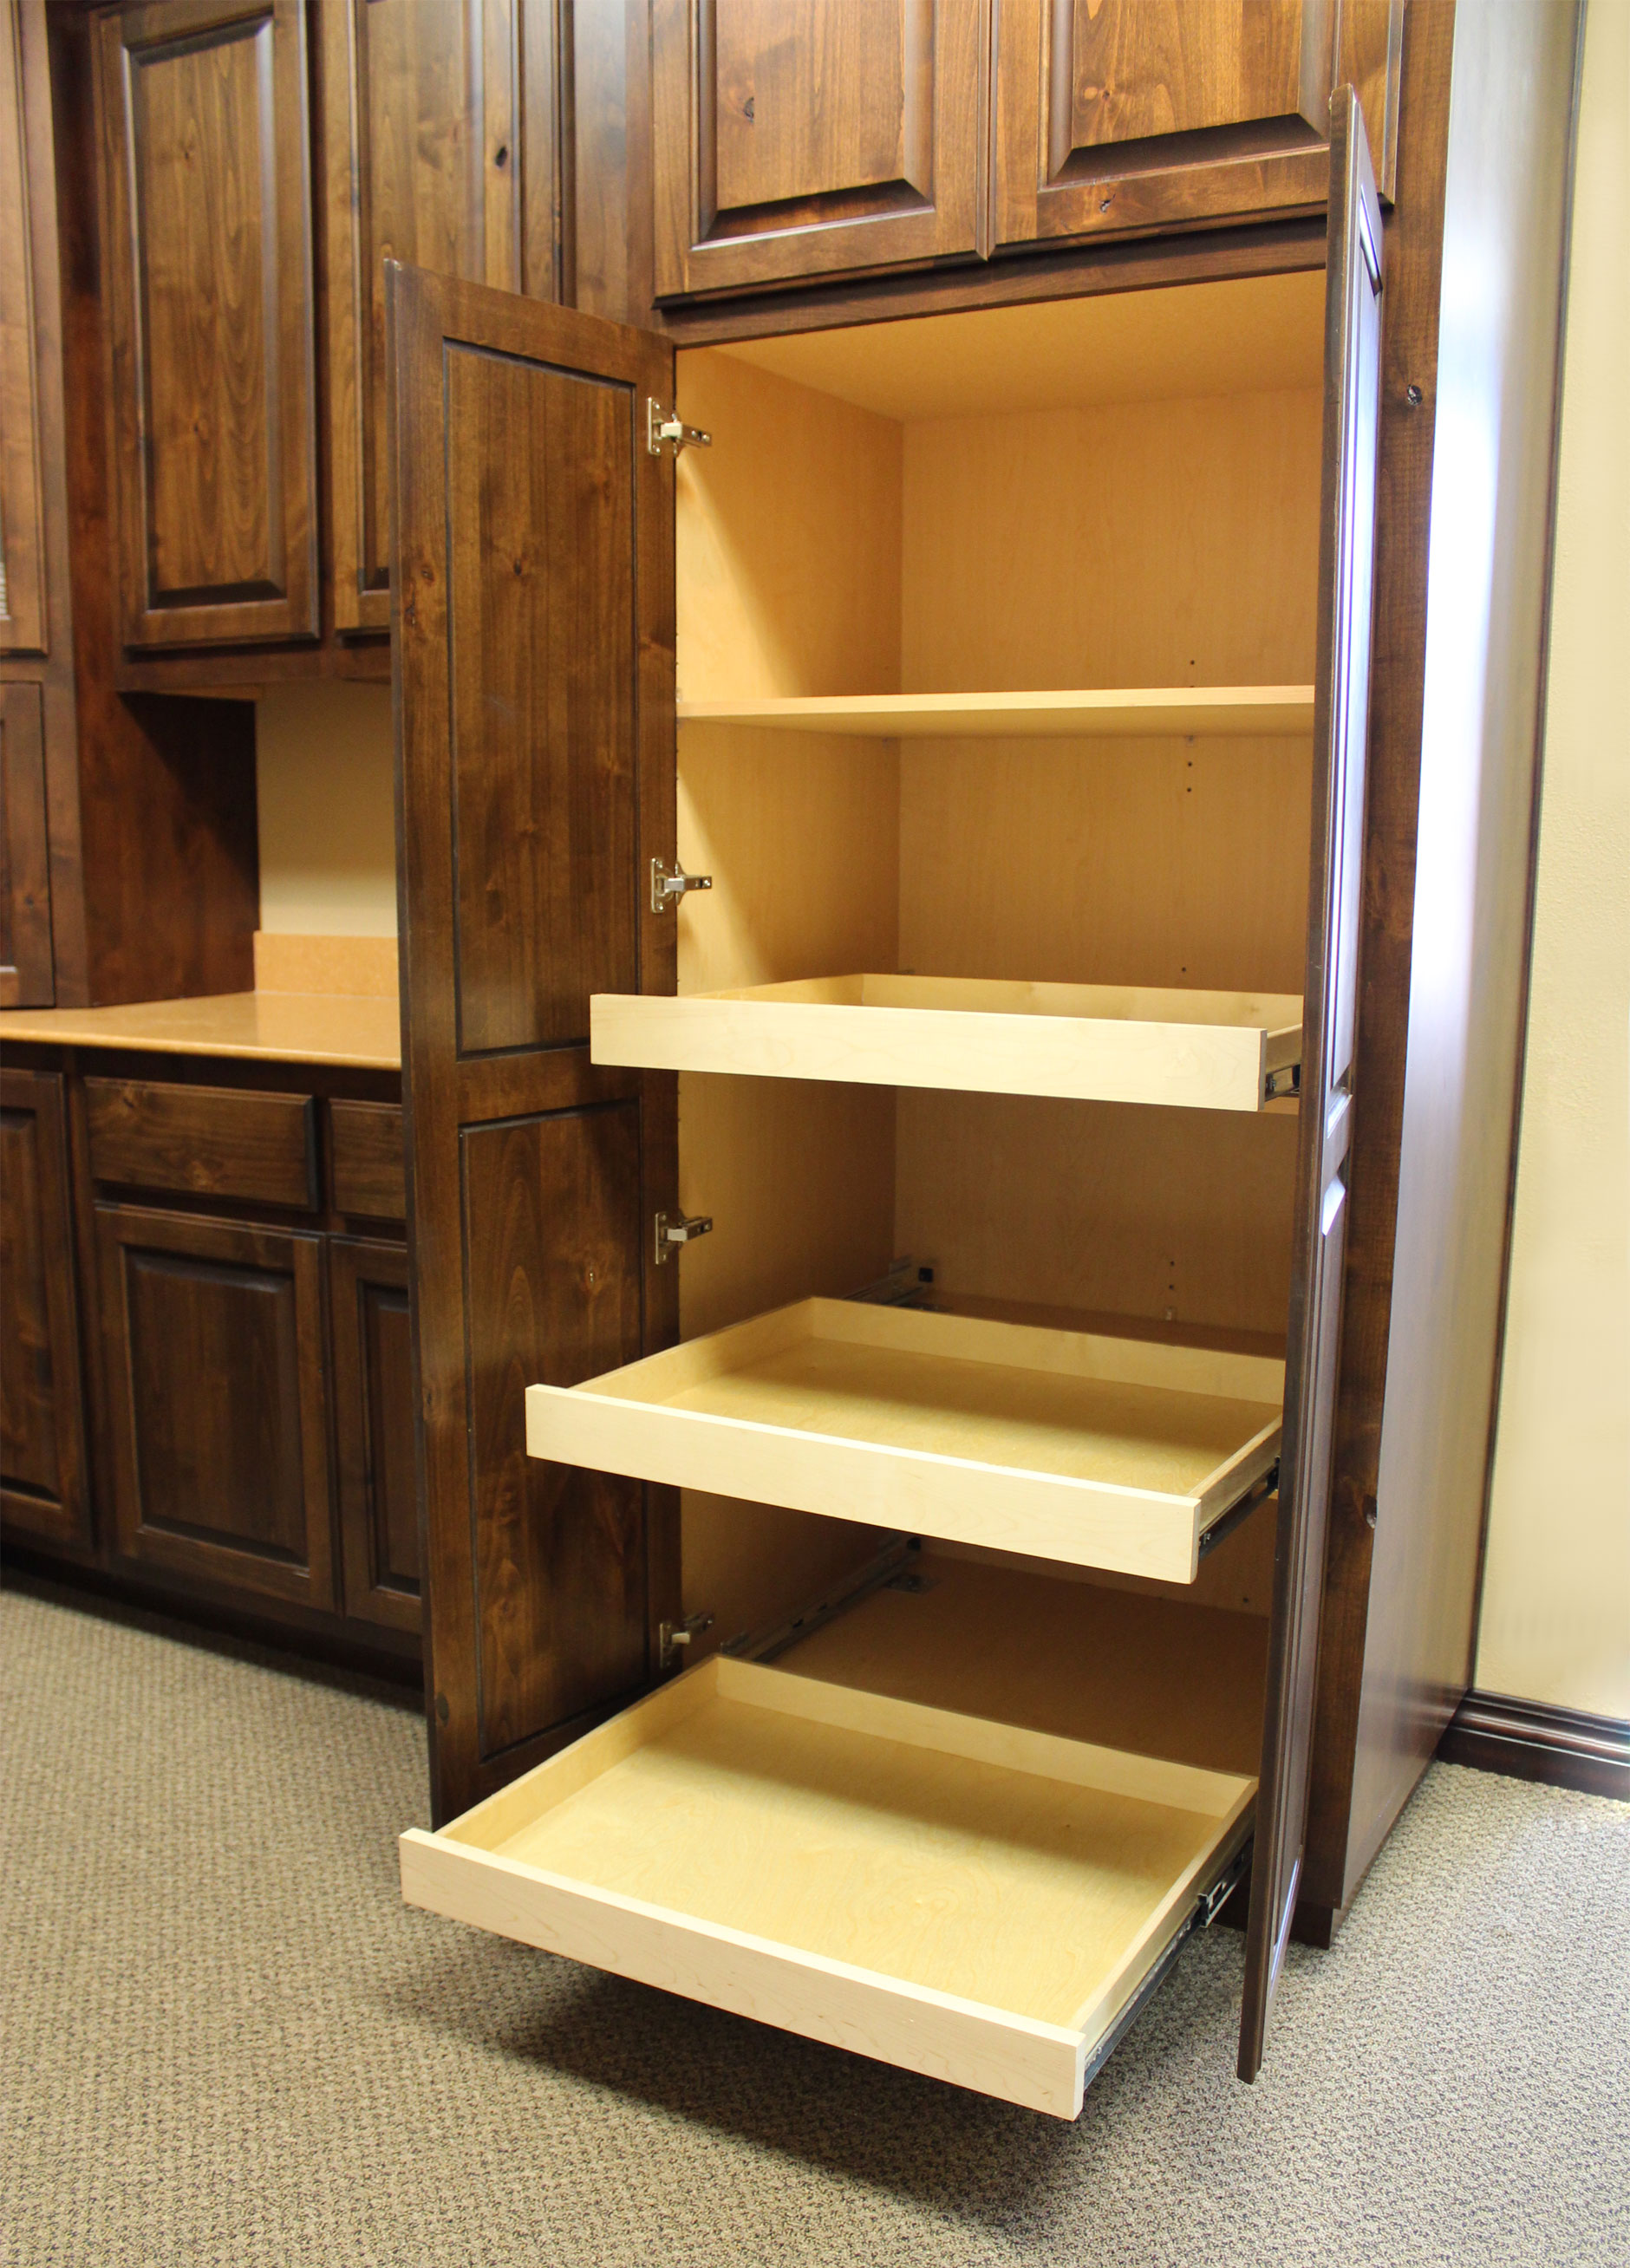 Pull Out Shelves - Burrows Cabinets - Central Texas Builder